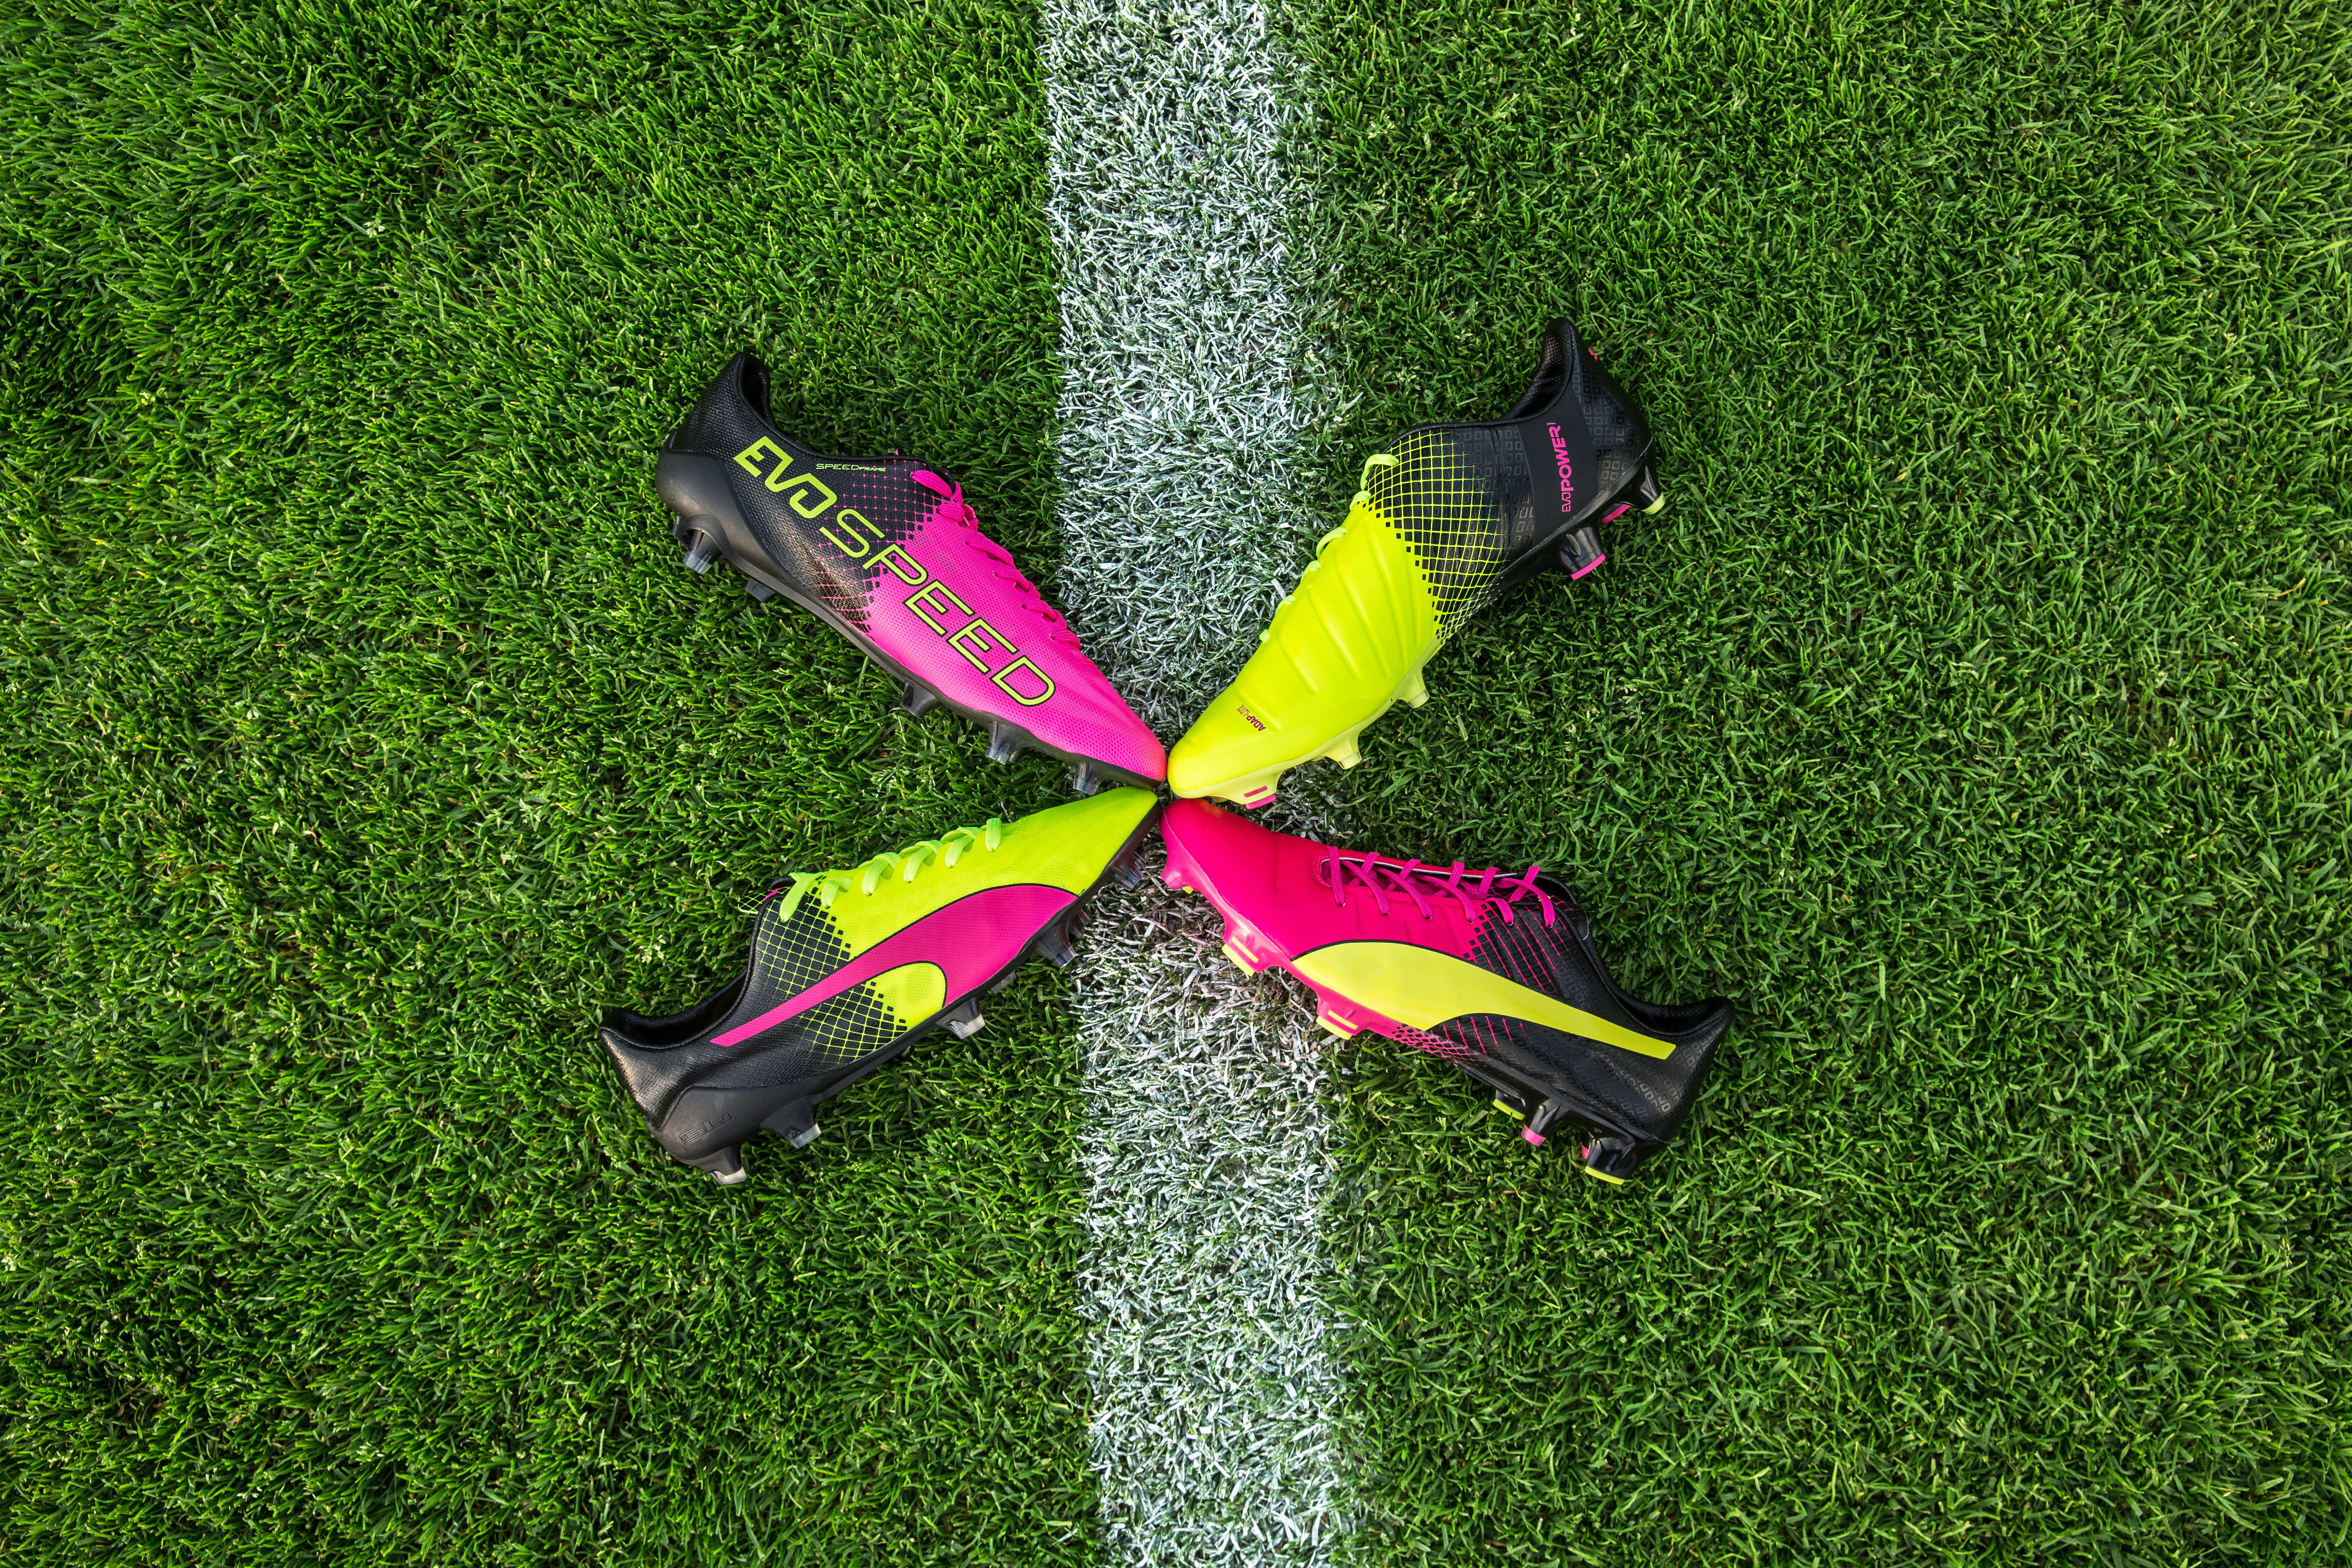 PUMA Tricks Collection evoPOWER and evoSPEED 2016 football boots griezmann fabregas